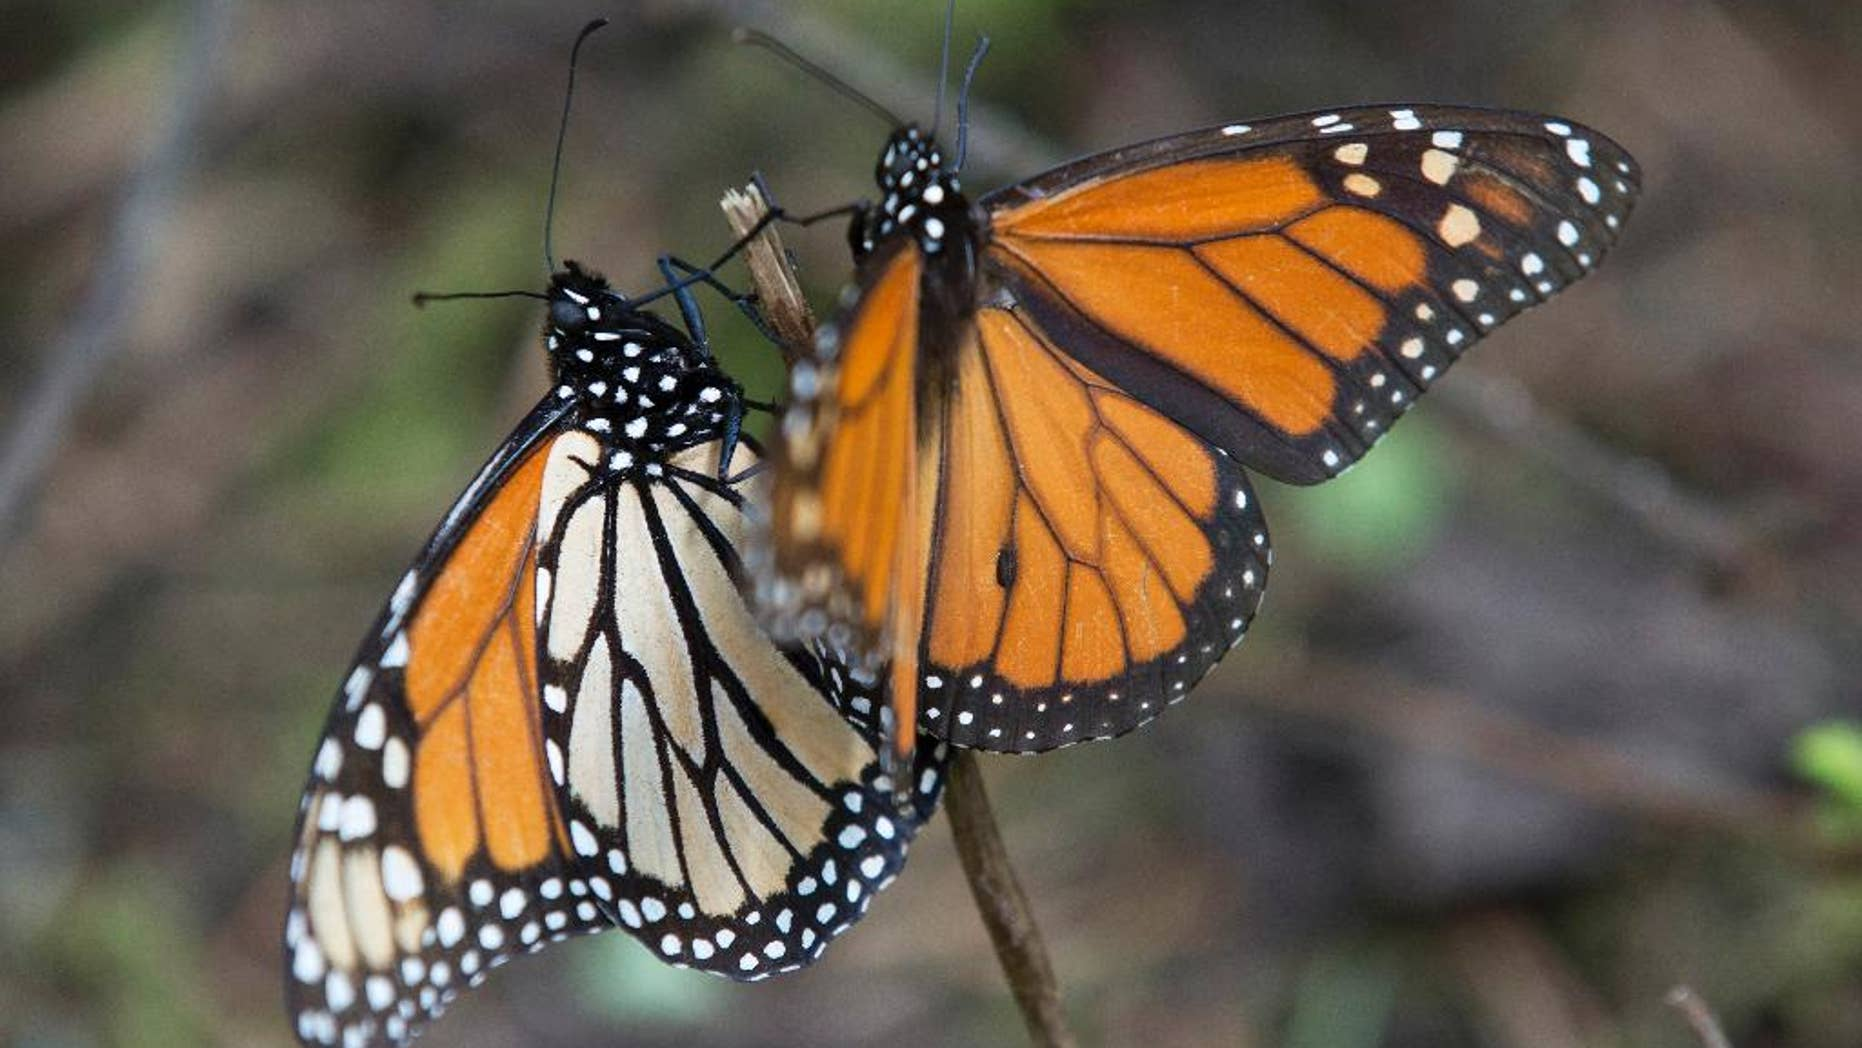 FILE - In this Jan. 4, 2015 file photo, monarch butterflies perch on a twig at the Piedra Herrada sanctuary, near Valle del Bravo, Mexico. Monarch butterflies have begun entering Mexico on their annual migration from the United States and Canada in October 2015. Mexico's Environment Department said Thursday, Oct. 8, 2015 that the butterflies had been spotted by park rangers entering Coahuila state, on the border with Texas. (AP Photo/Rebecca Blackwell, File)